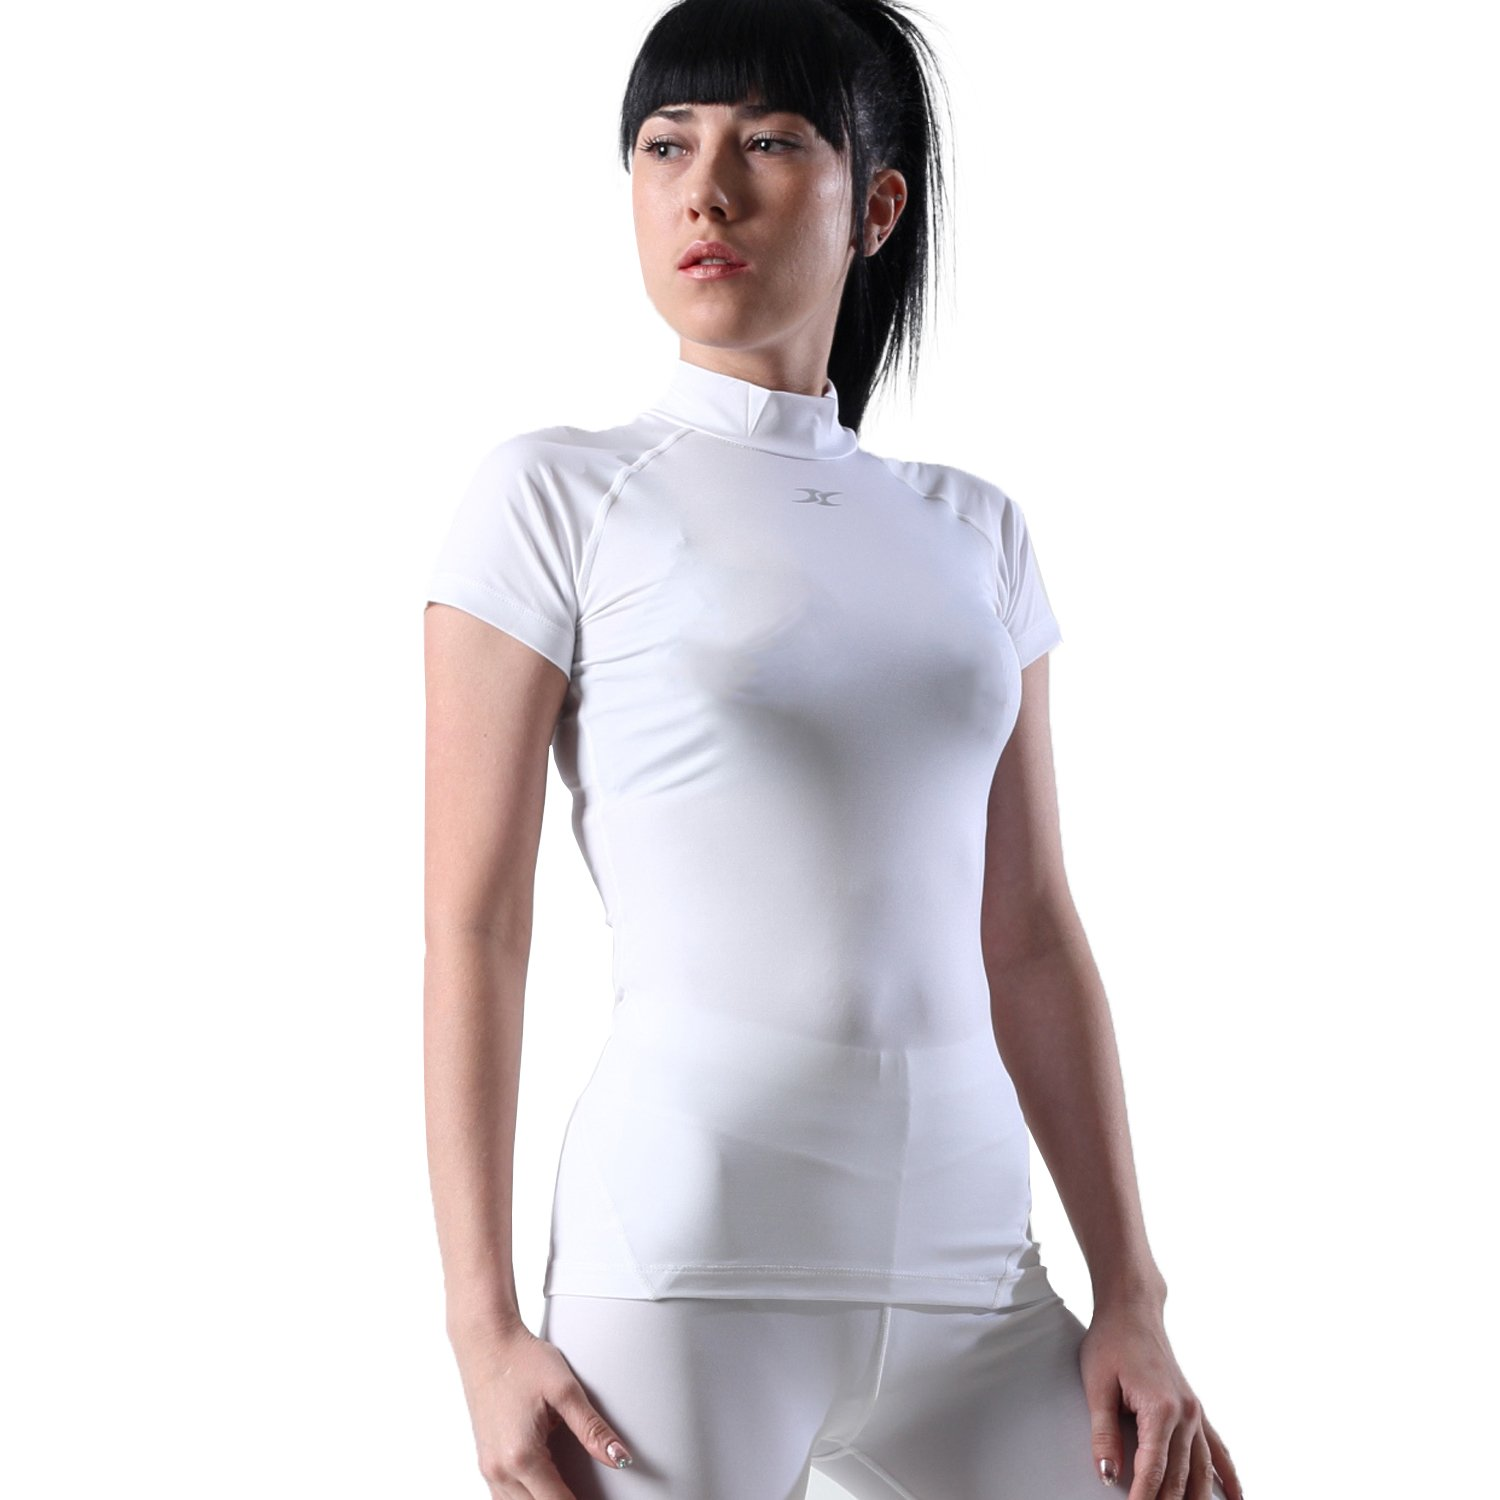 Henri maurice Mock Turtleneck Women Compression Shirt Short Sleeve Base Layer for Gym Yoga SO (White, Medium)